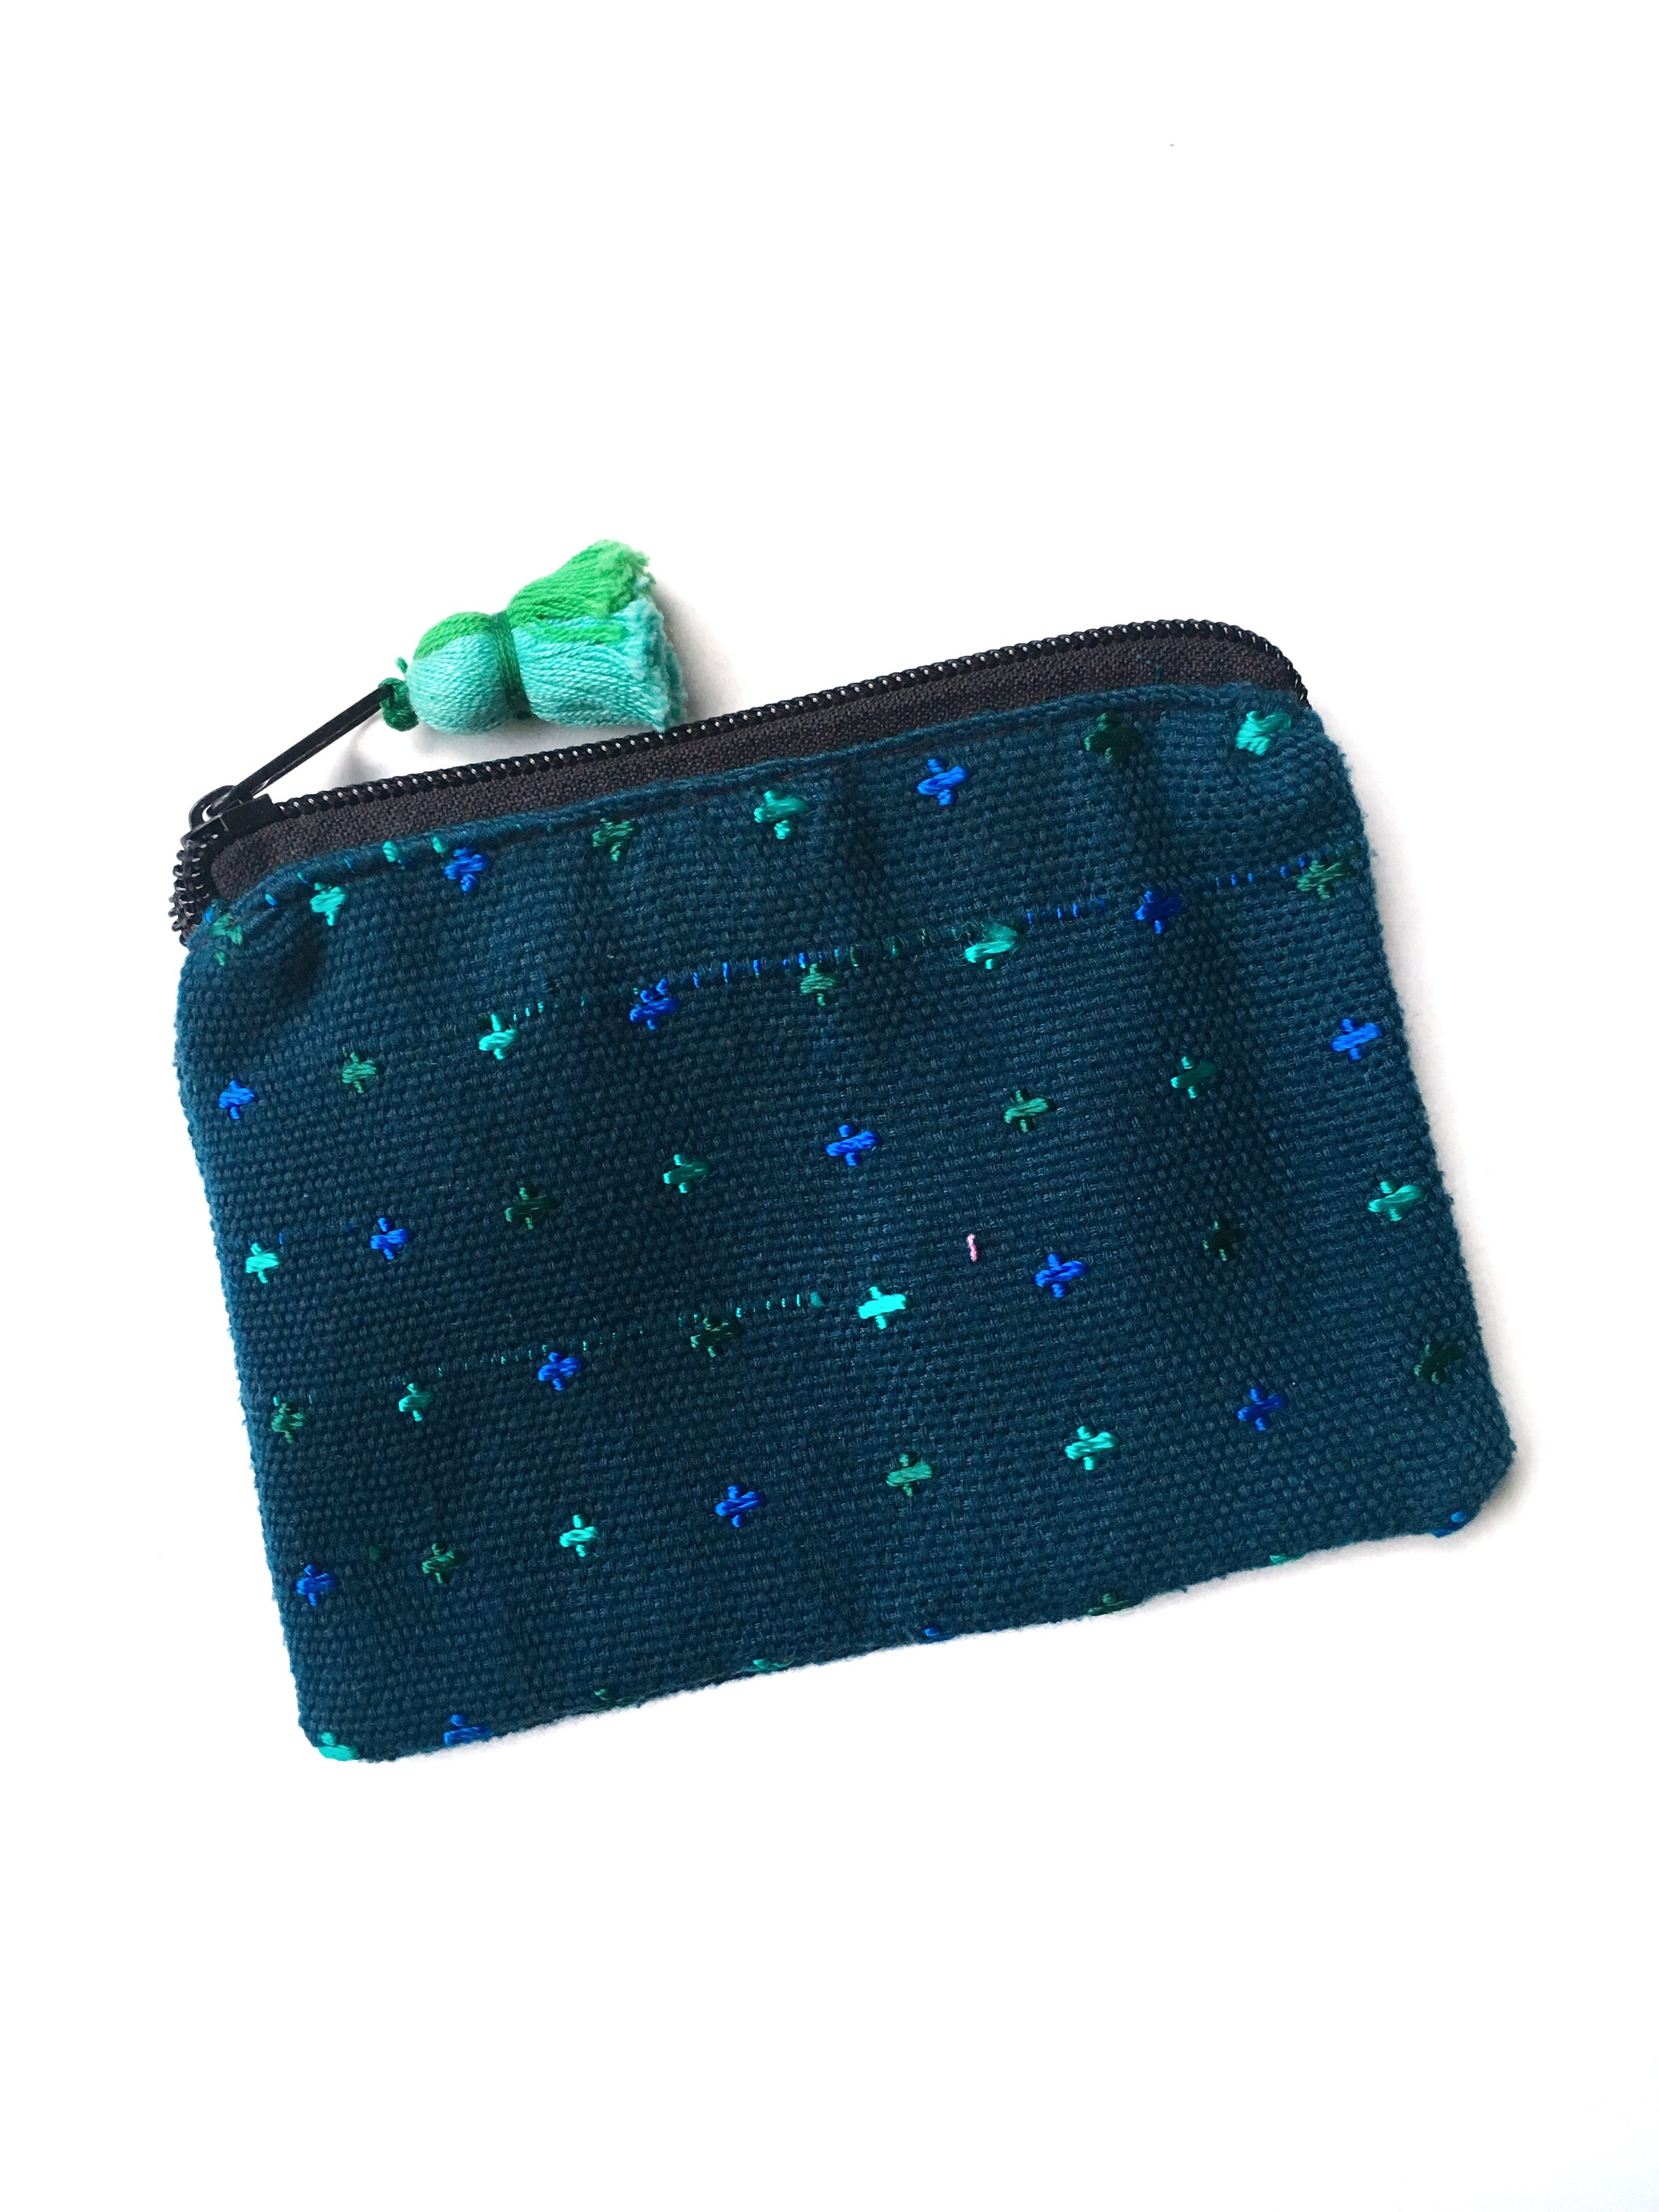 NOMAD COIN POUCH - TURQUOISE